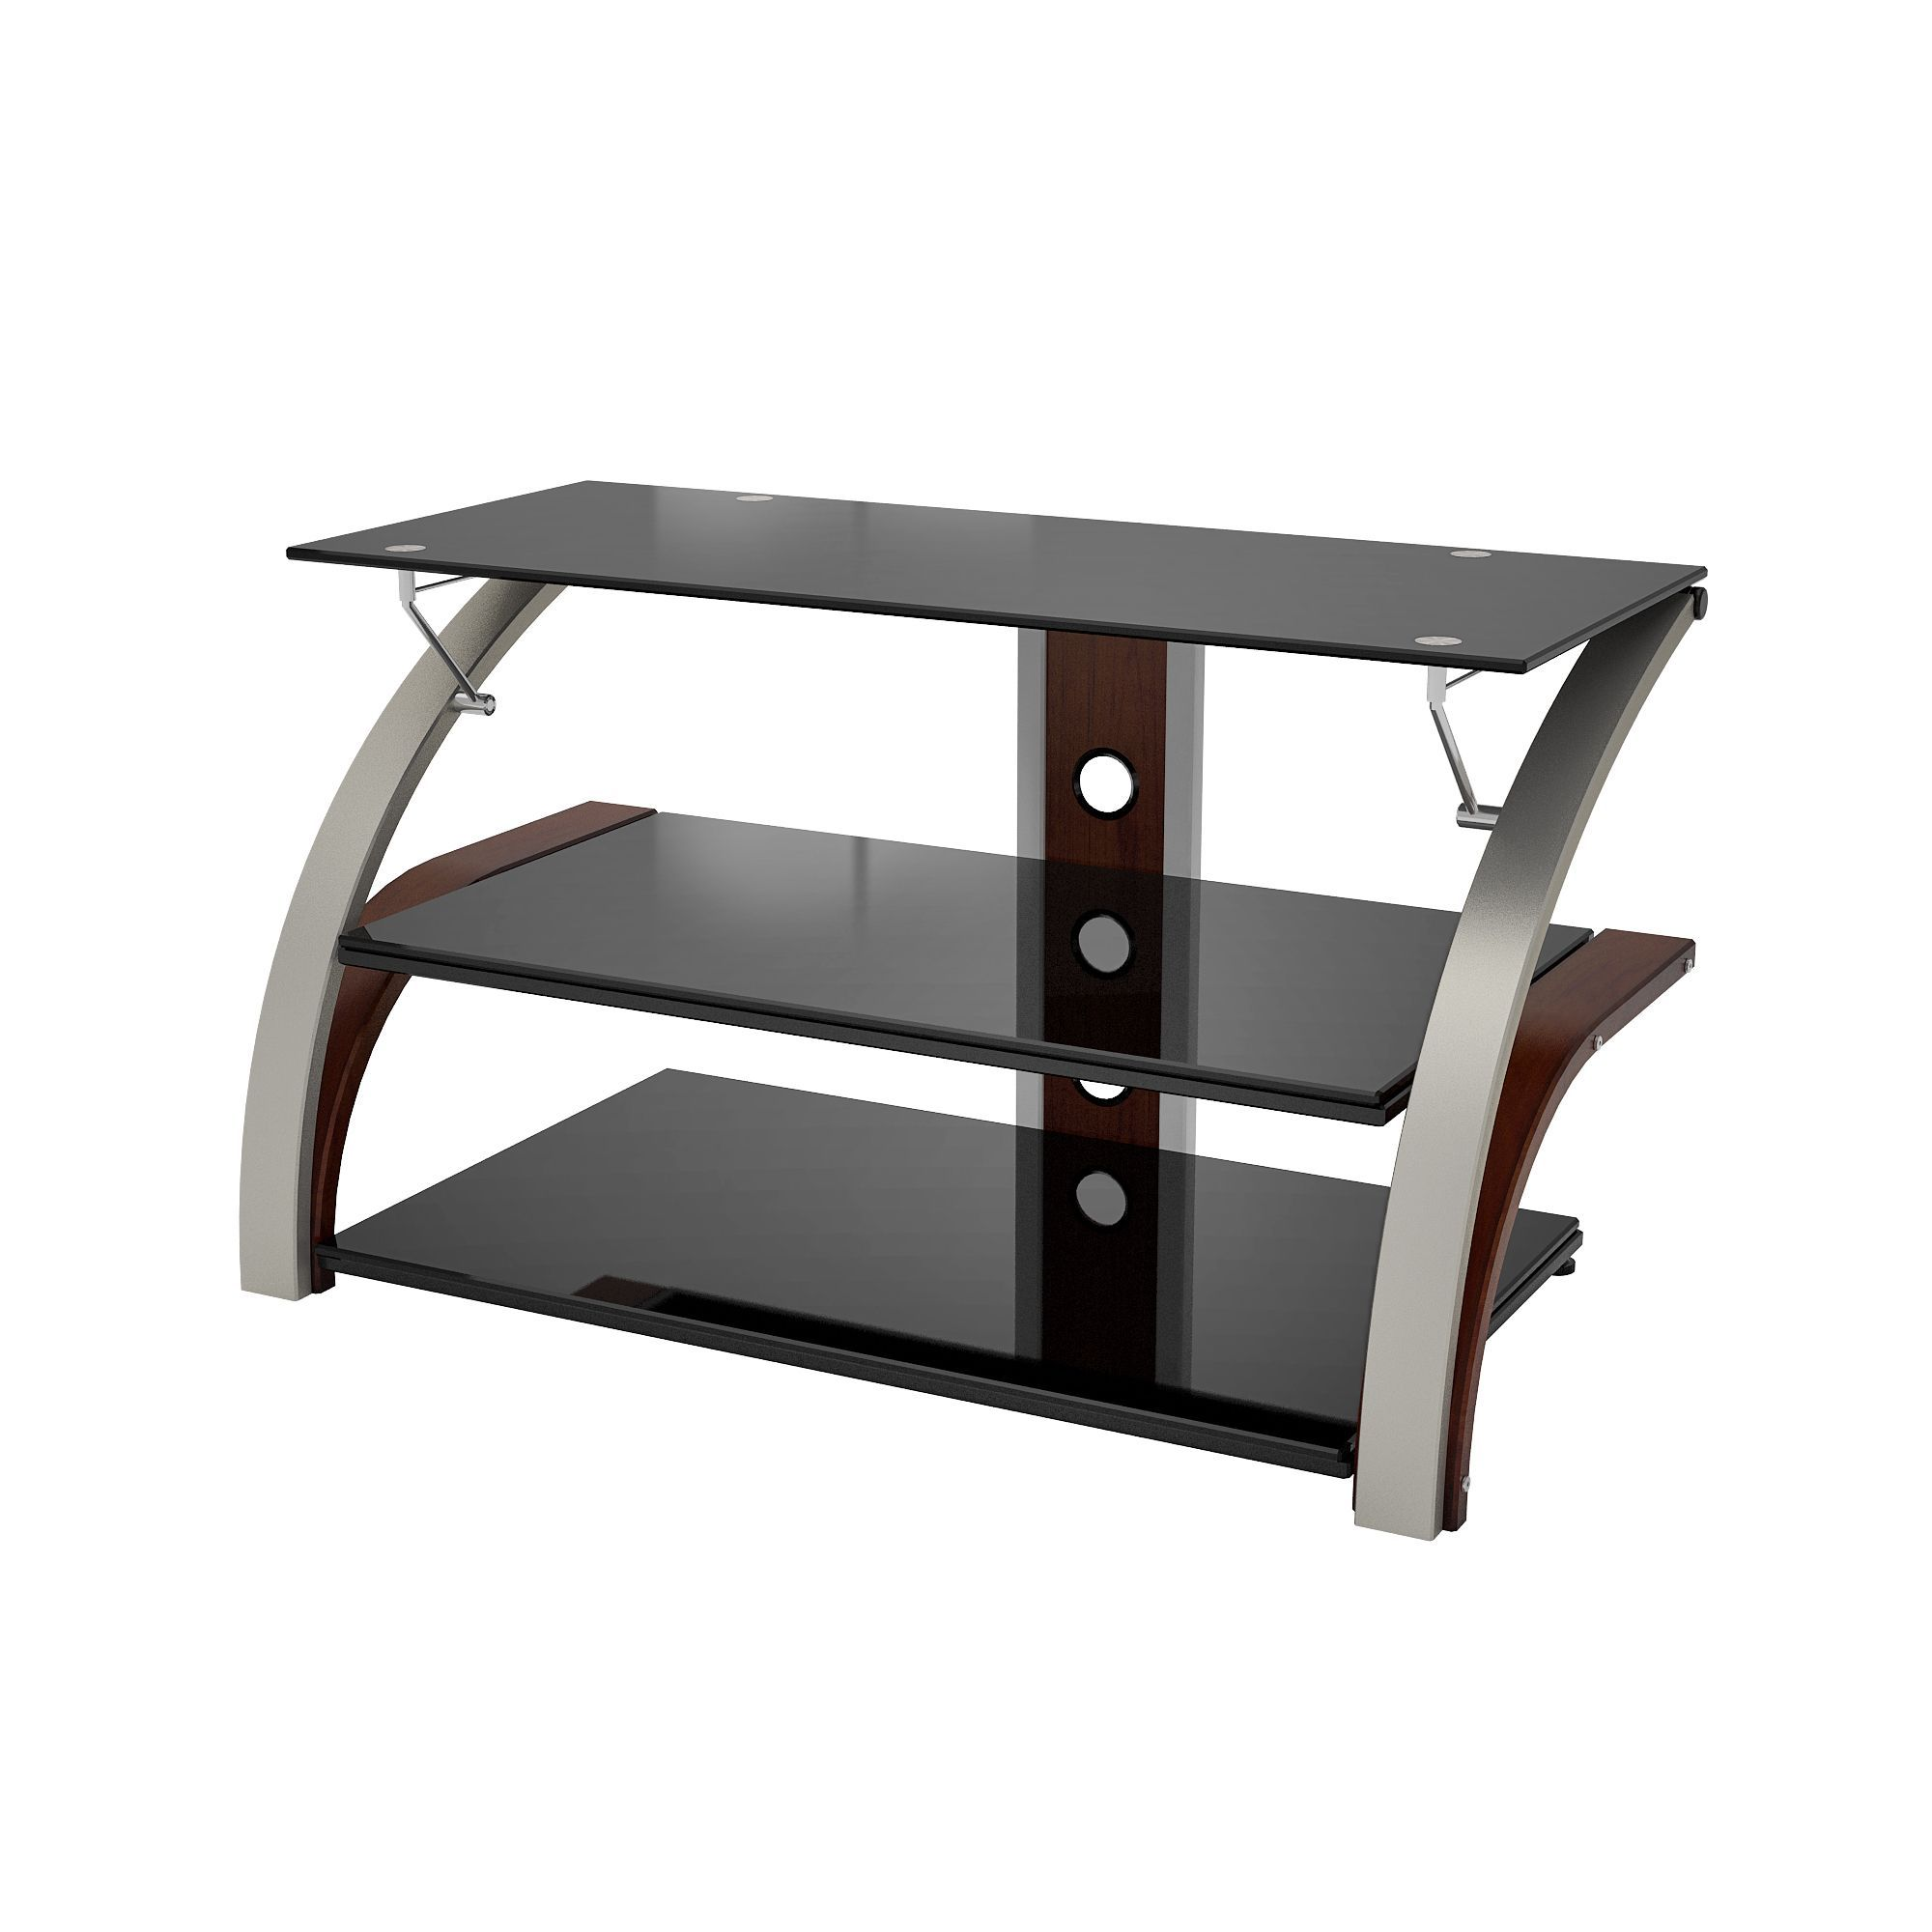 Elecktra Champagne 40 inch TV Stand Elecktra 40 W TV Stand Brown